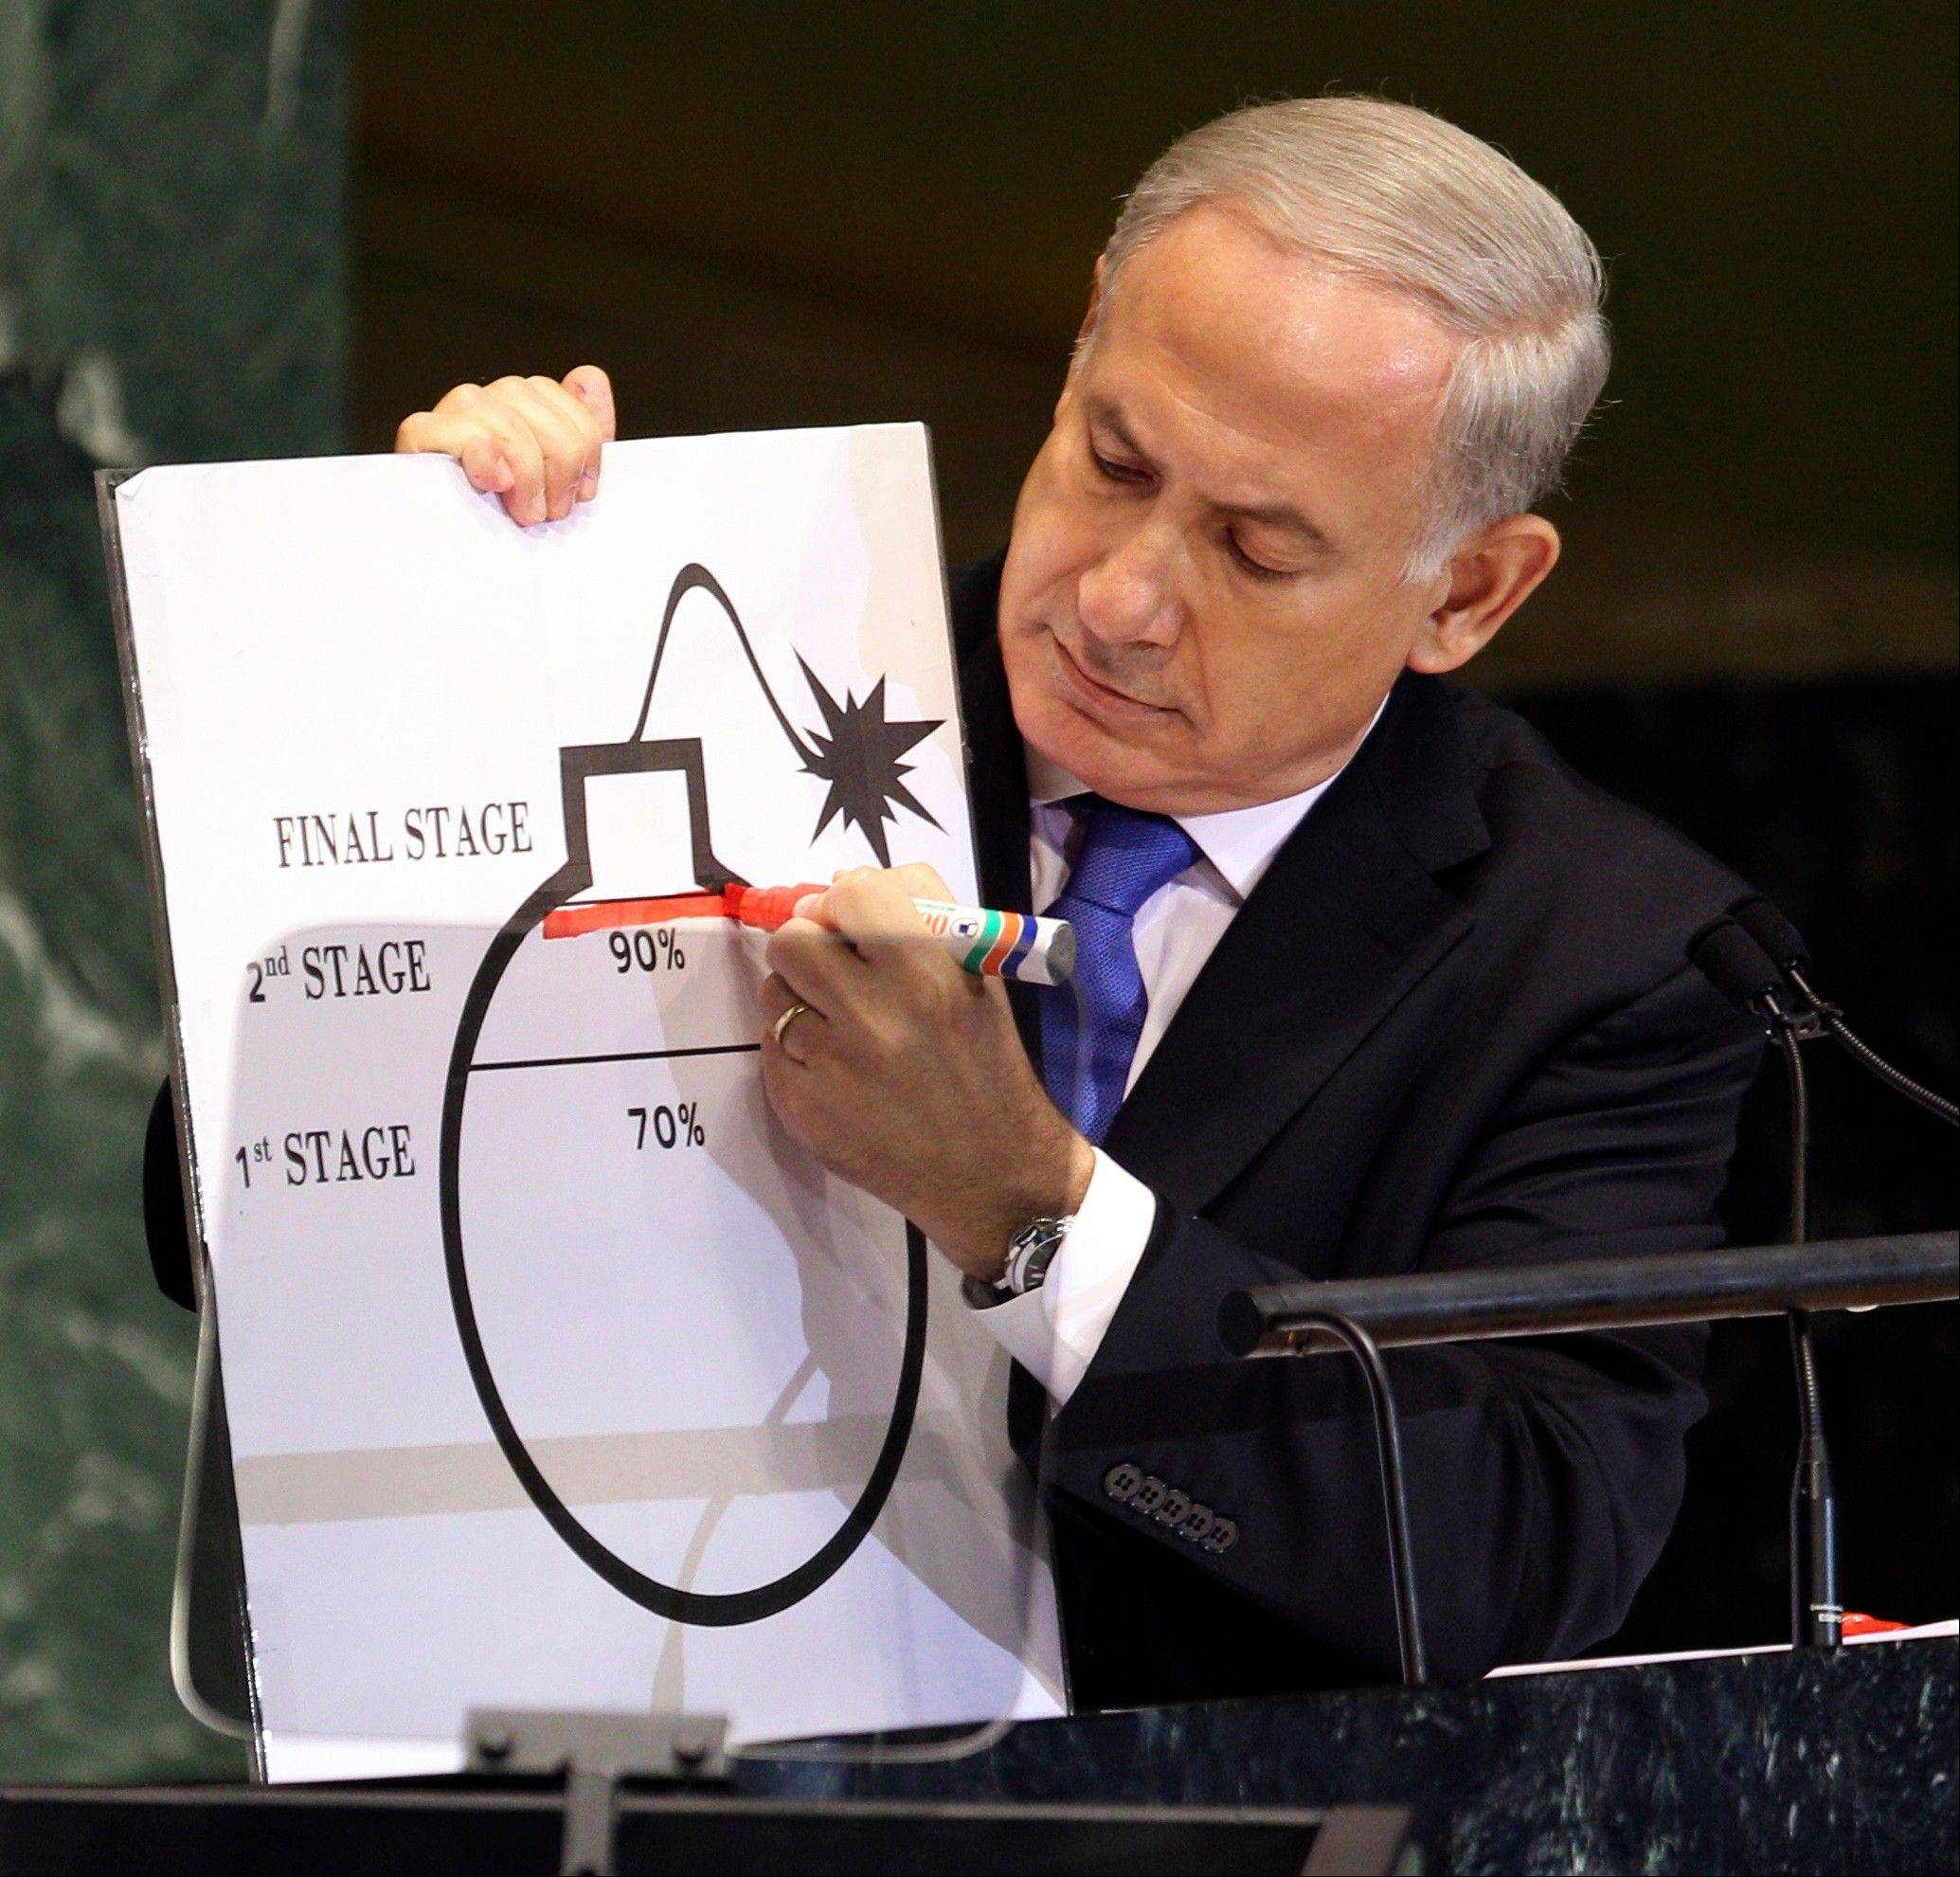 Prime Minister Benjamin Netanyahu of Israel shows an illustration Thursday as he describes his concerns over Iran's nuclear ambitions during his address to the 67th session of the United Nations General Assembly at U.N. headquarters.